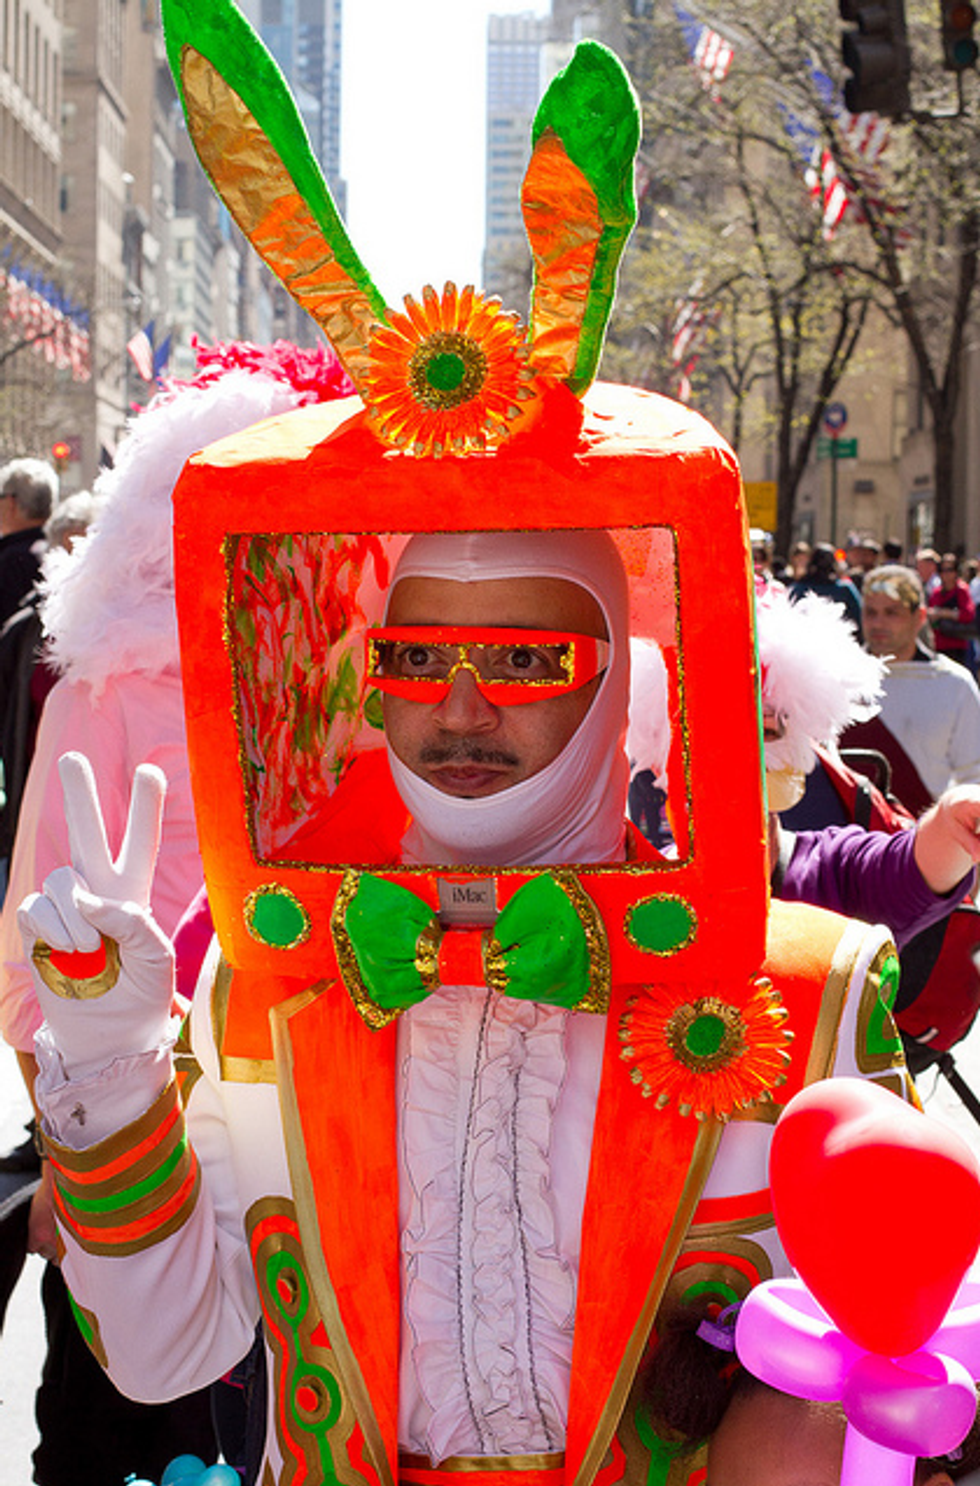 25 Most Outrageous Bonnets From New York's Easter Parade